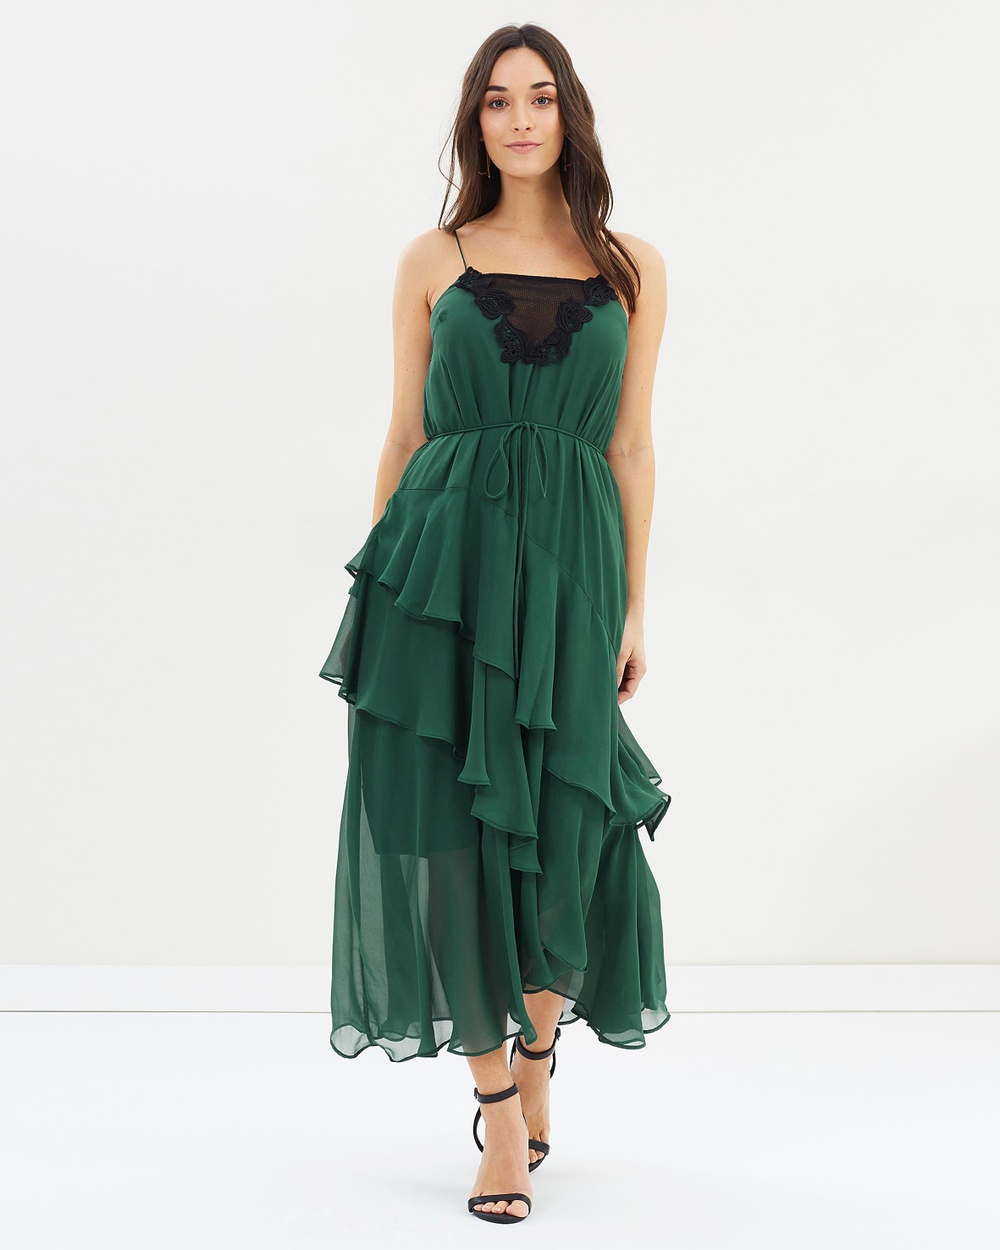 Cooper St Lucille Tie Midi Dress Dresses Evergreen Lucille Tie Midi Dress